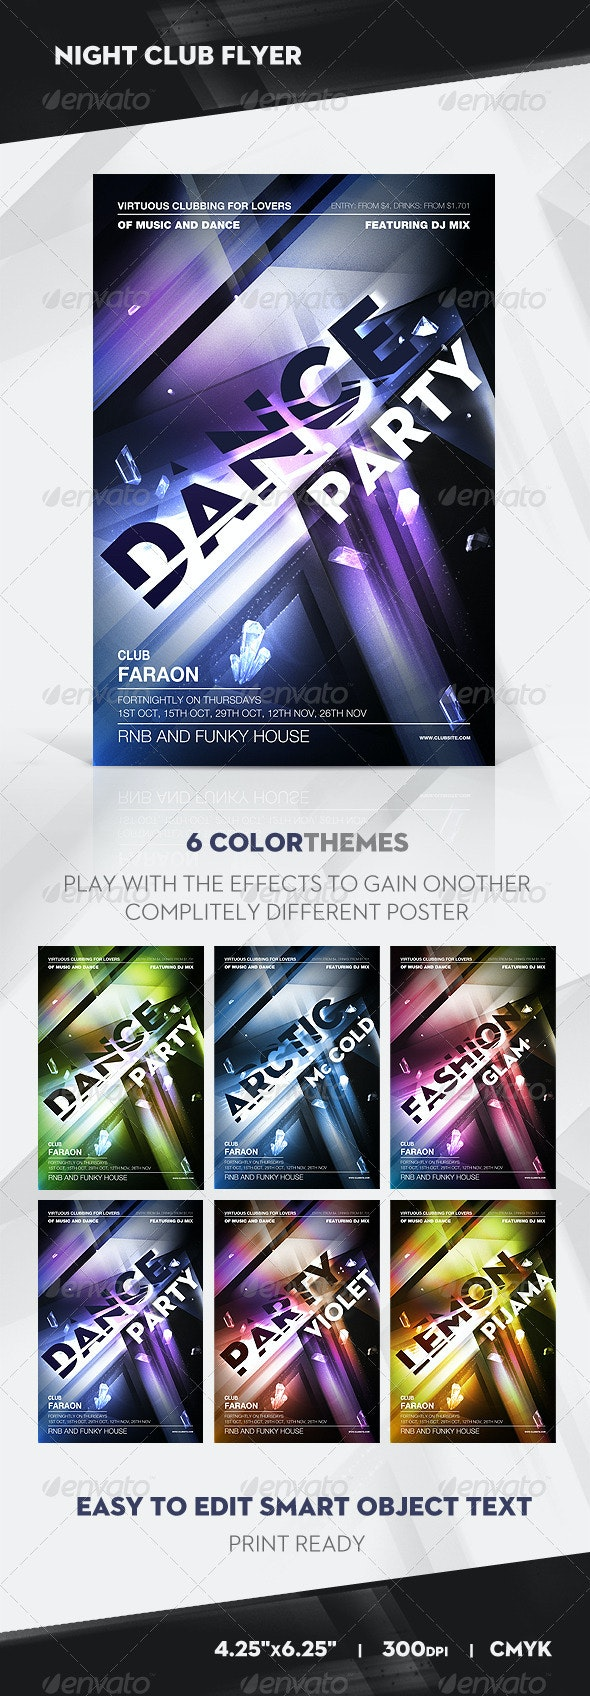 Night Club Flyer / Poster - Clubs & Parties Events